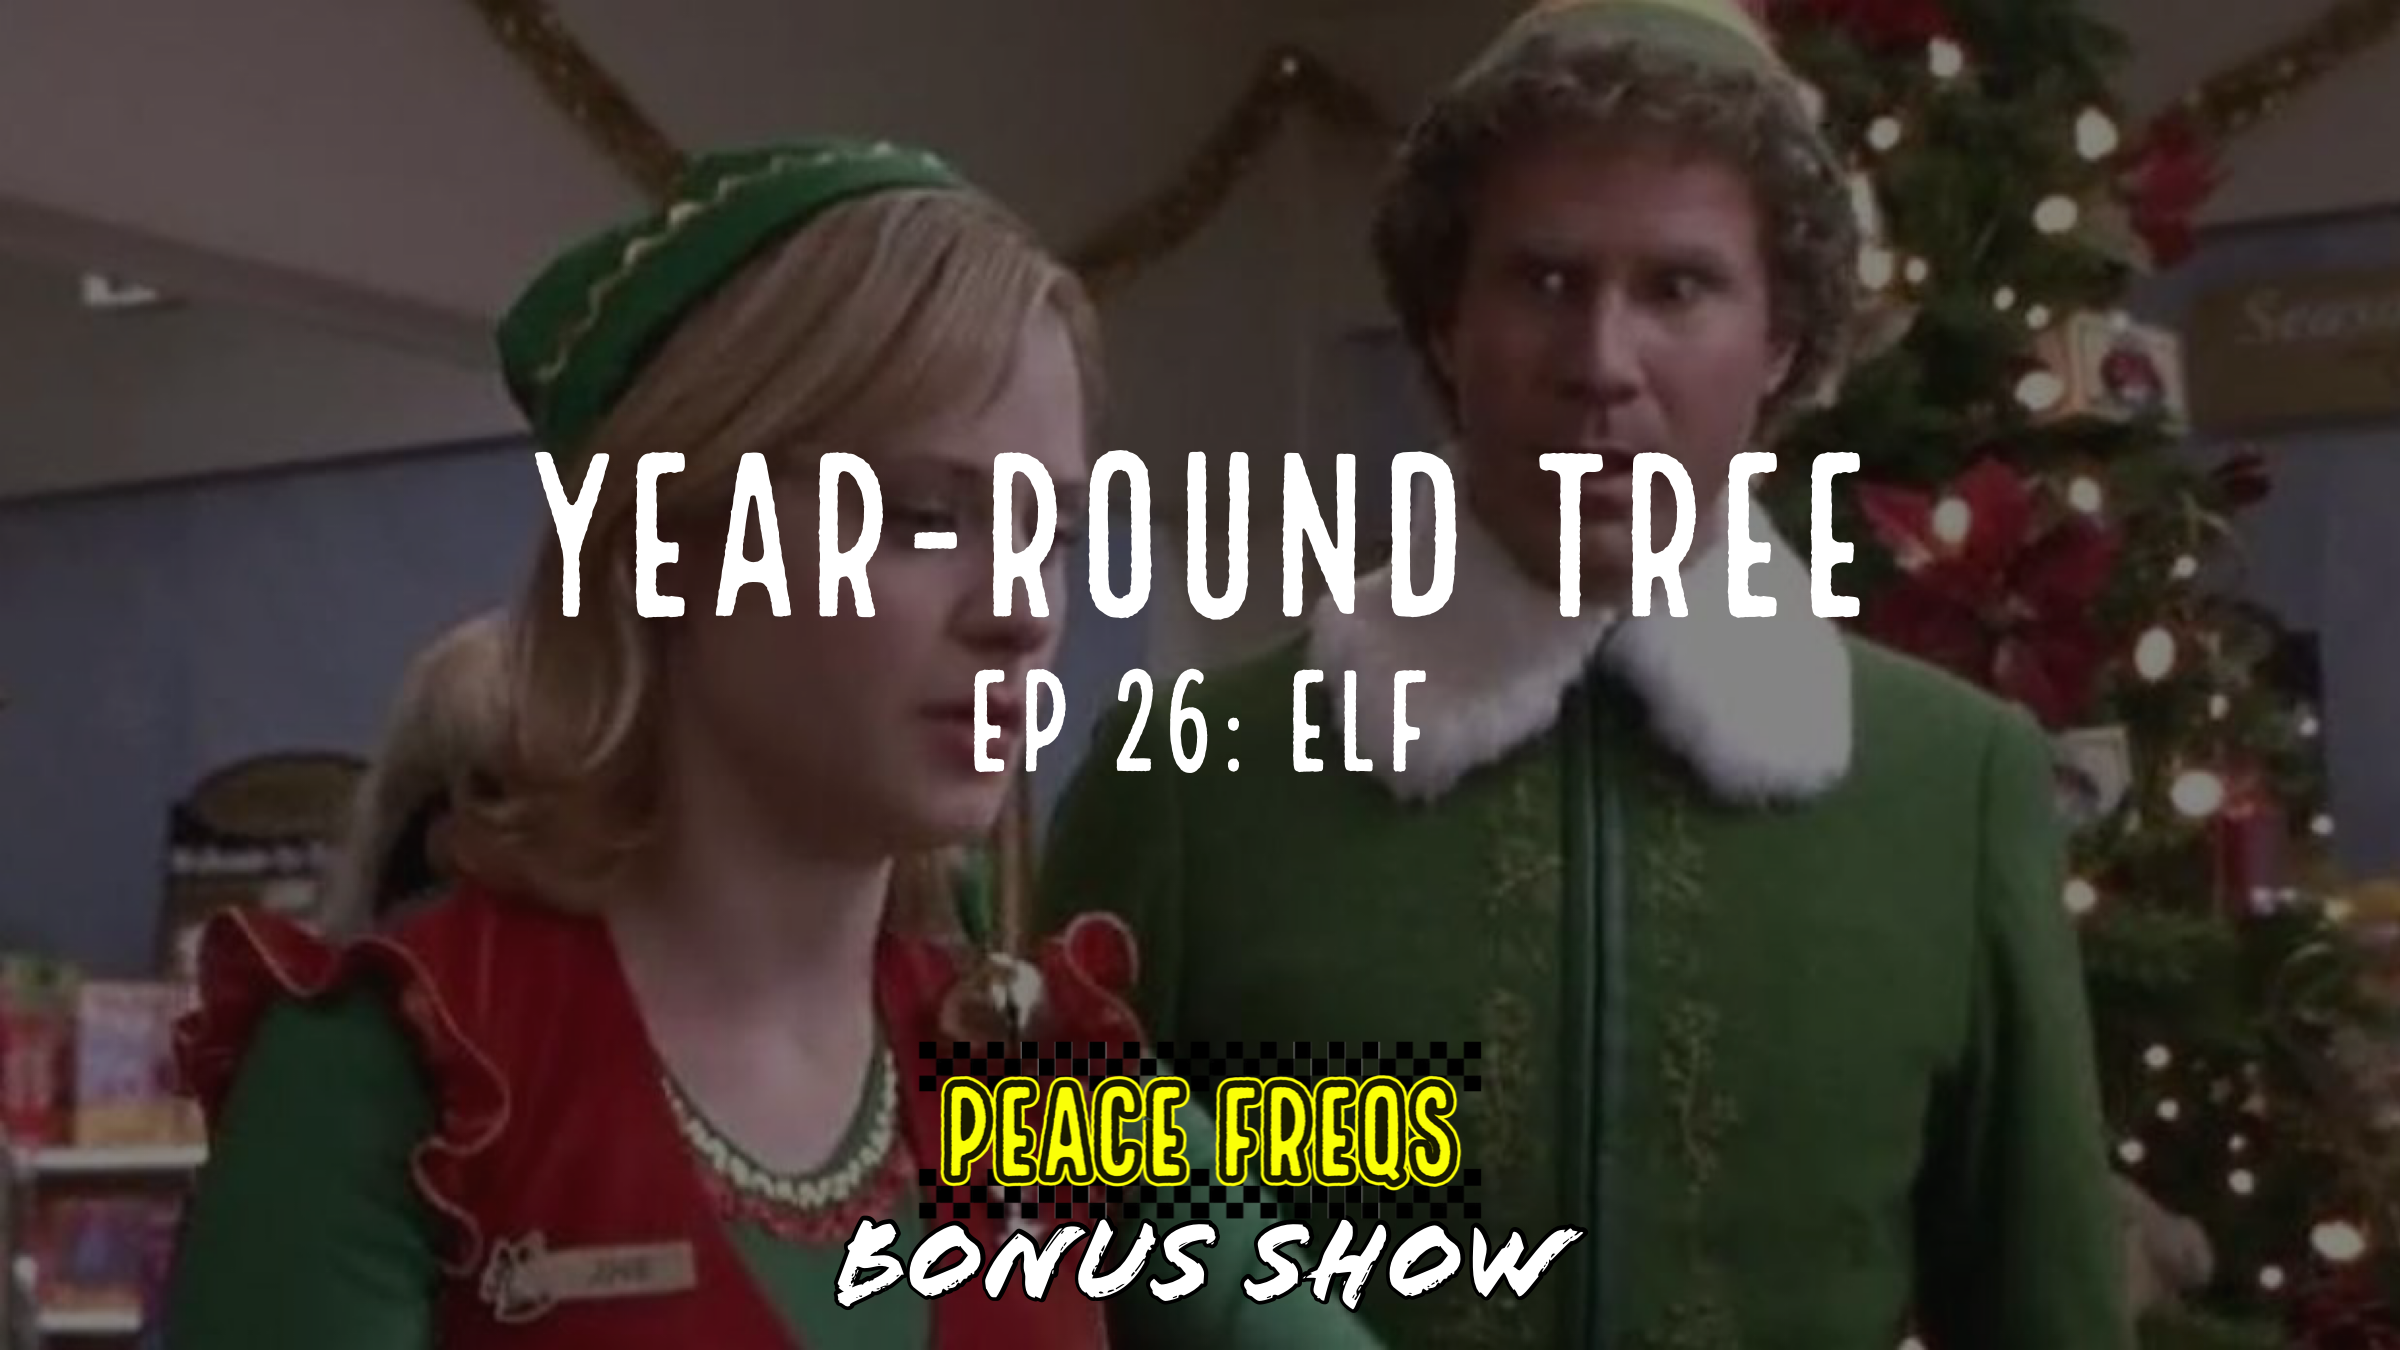 Elf Review - Year-Round Tree 026 Title Card